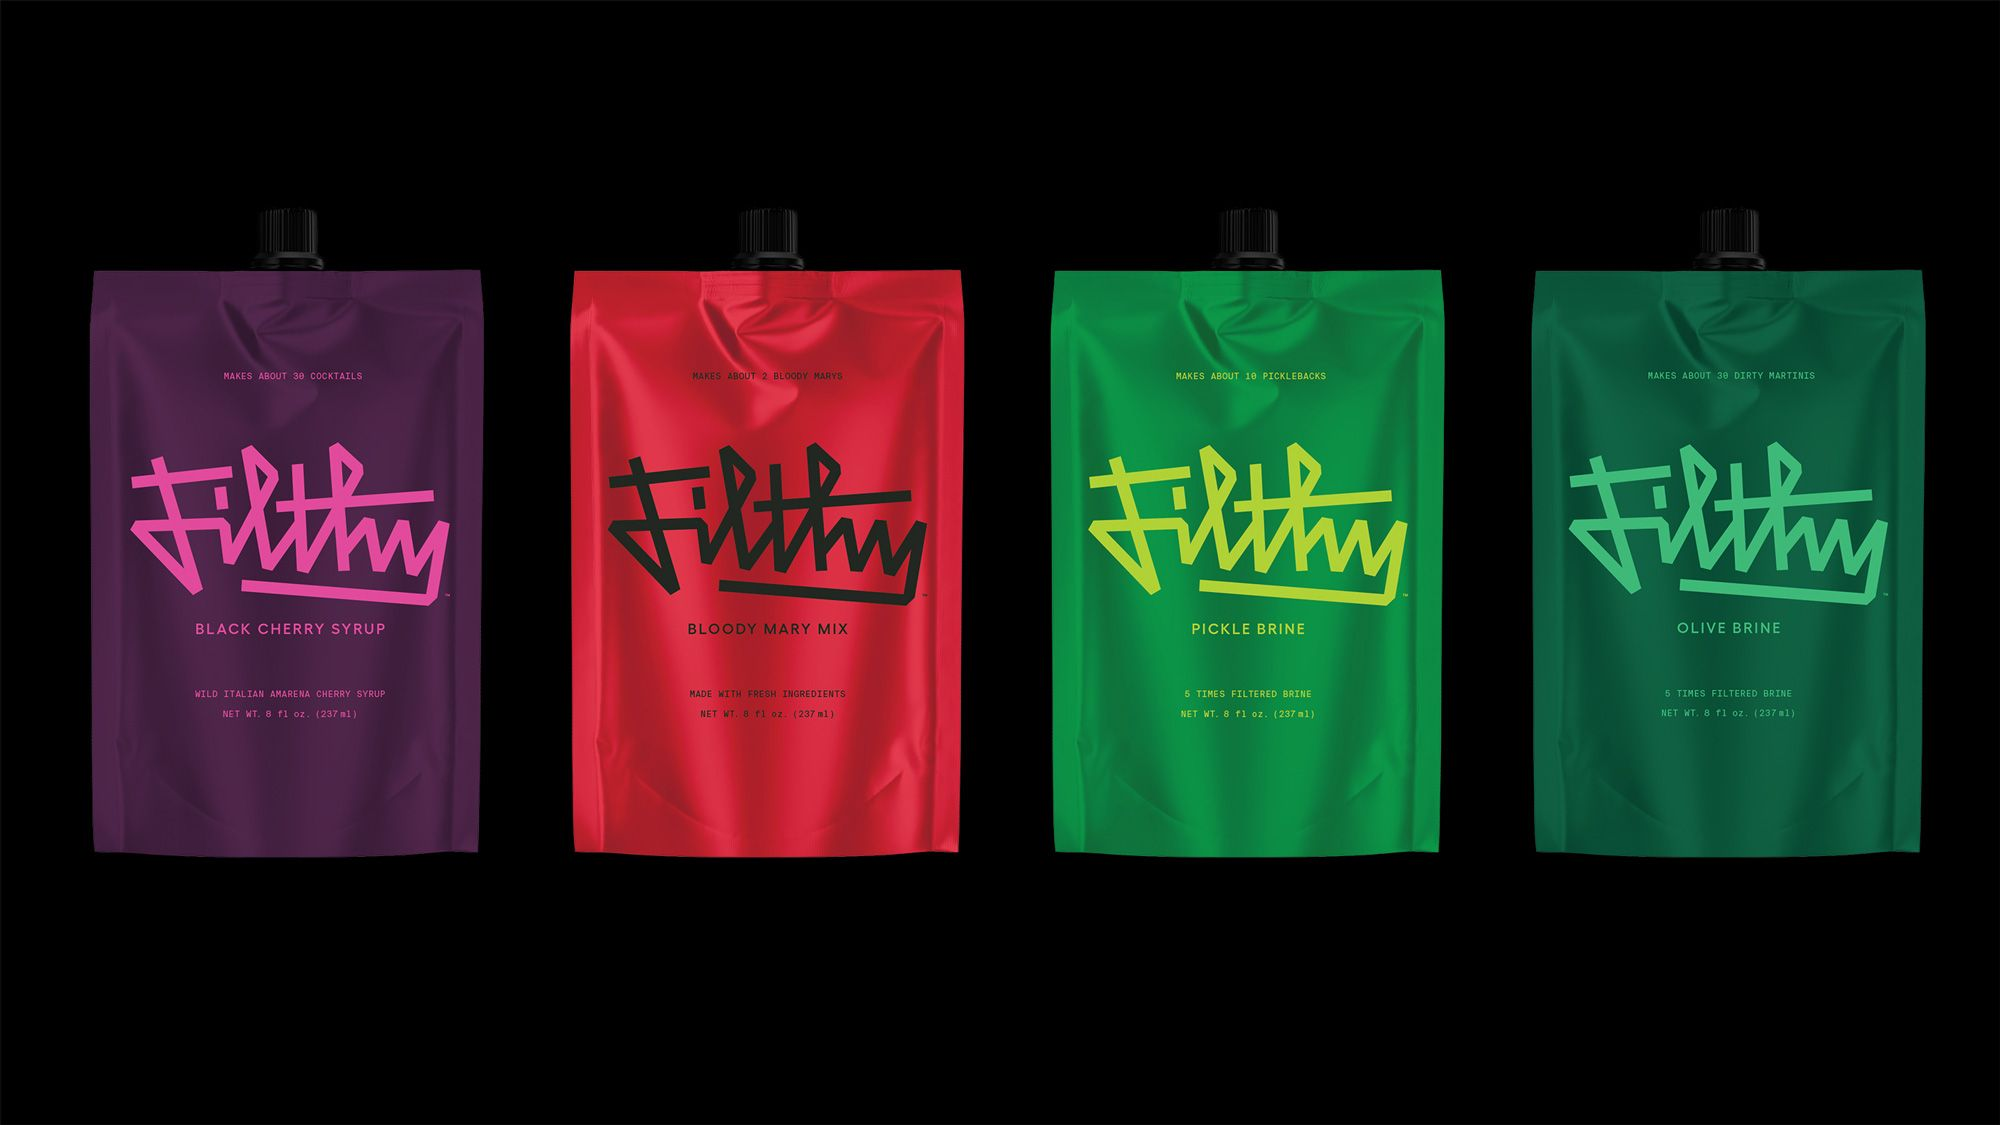 Brand New New Logo Identity And Packaging For Filthy Food By Mother Design In 2020 Identity Logo Gomez Palacio Motion Design